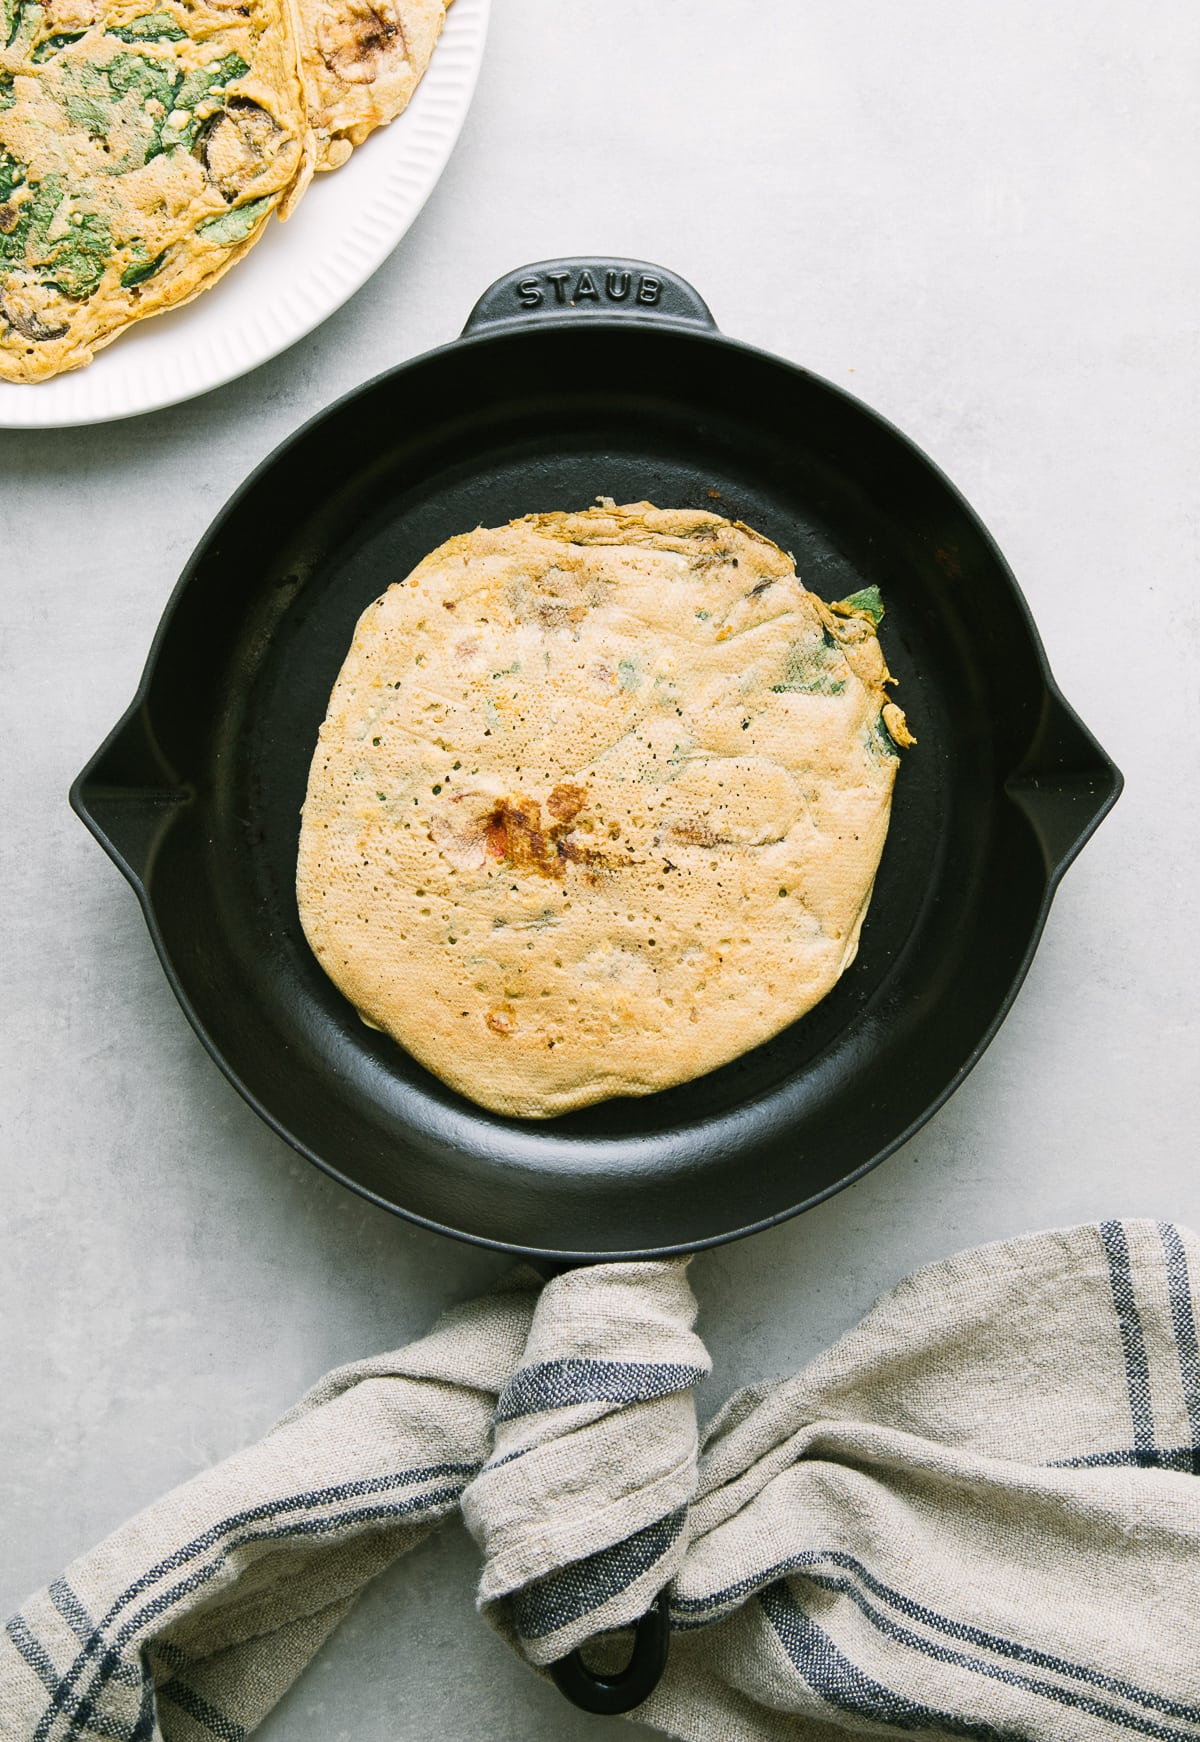 top down view of freshly made gluten free chickpea pancake in a cast iron skillet.